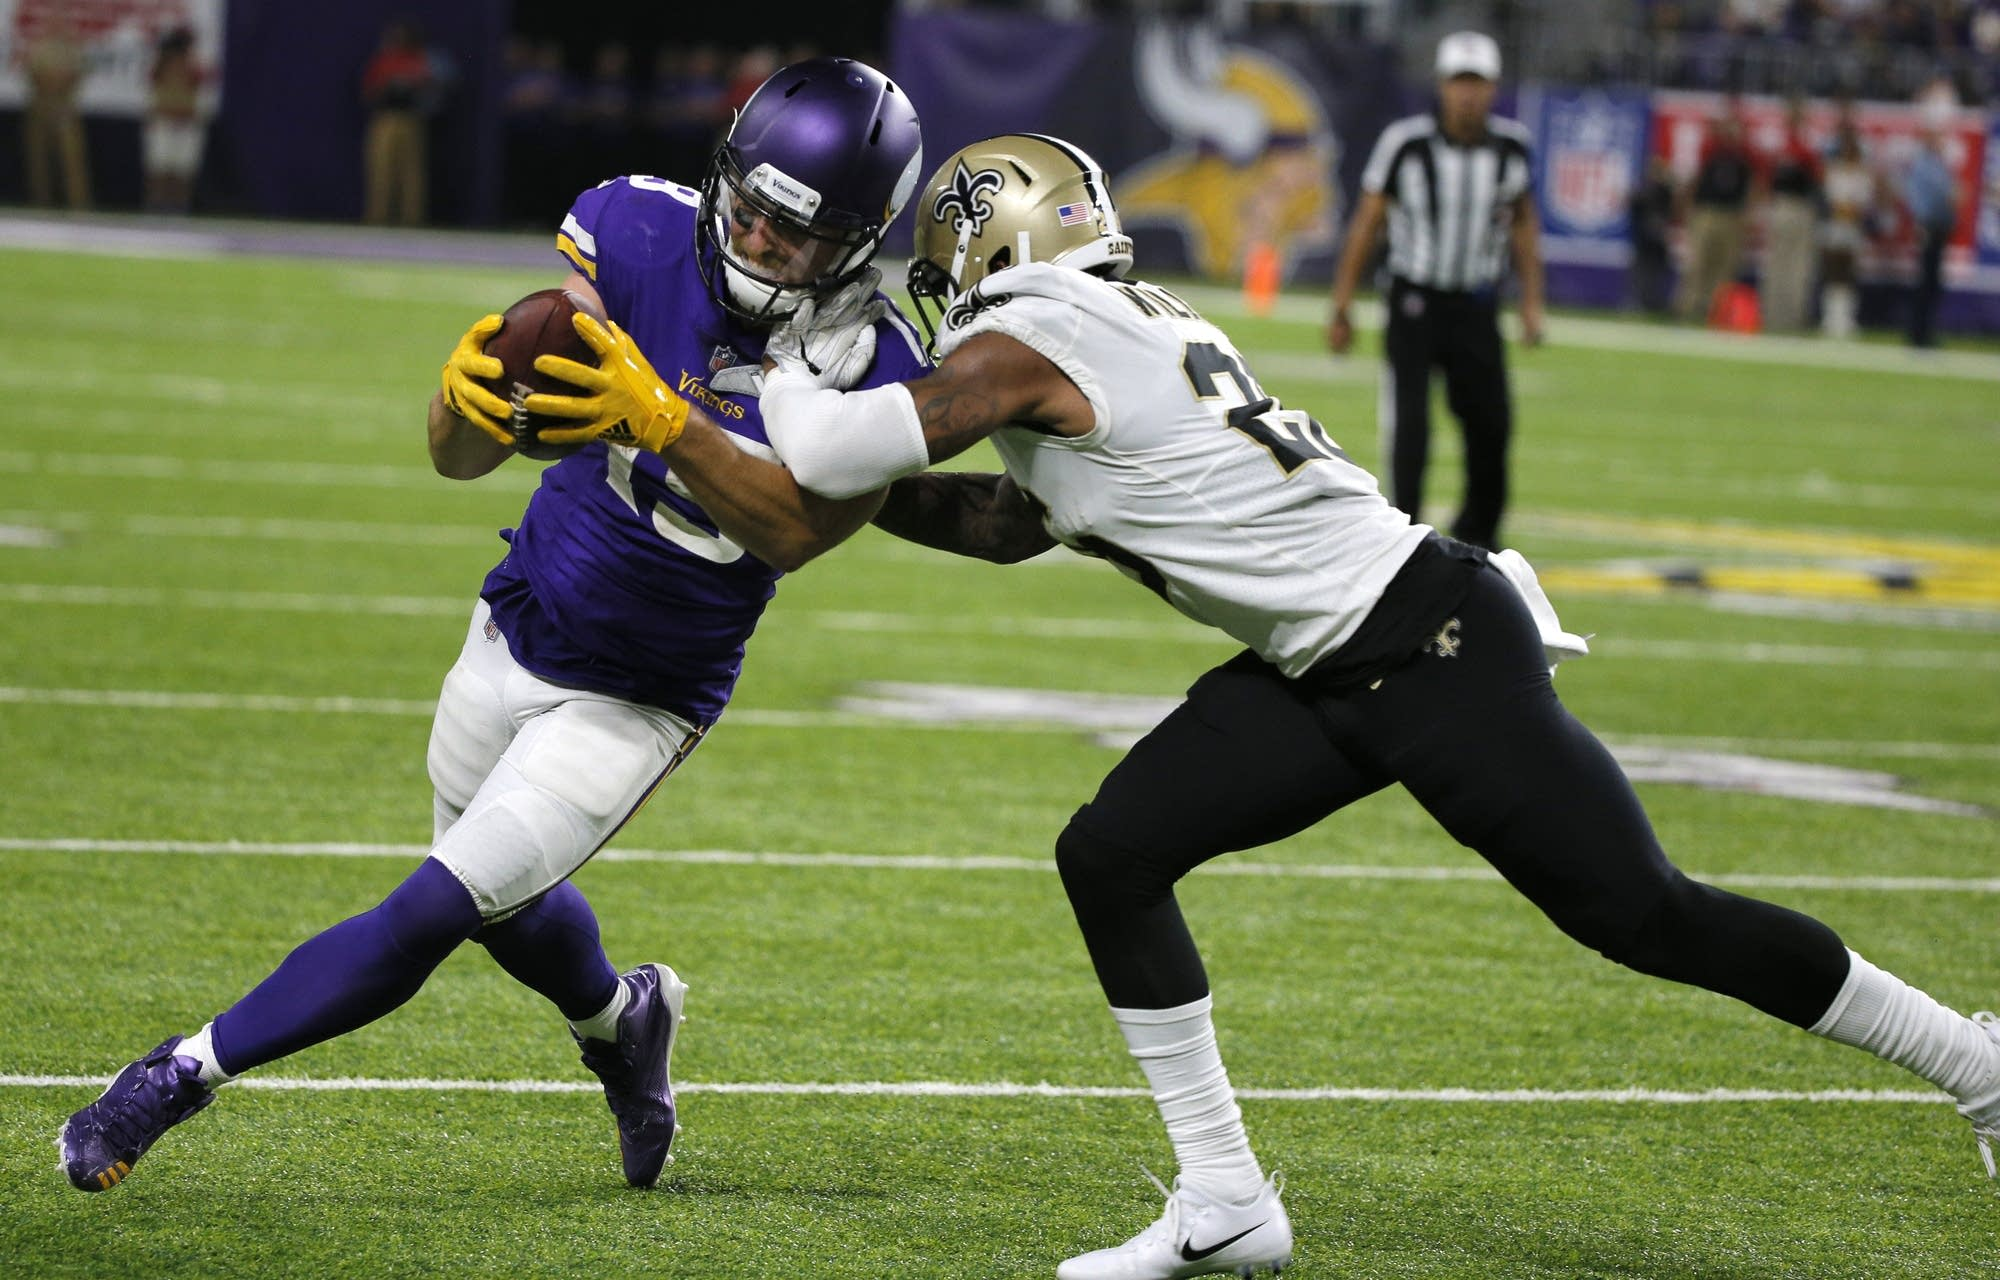 Here's what the Vikings are up against